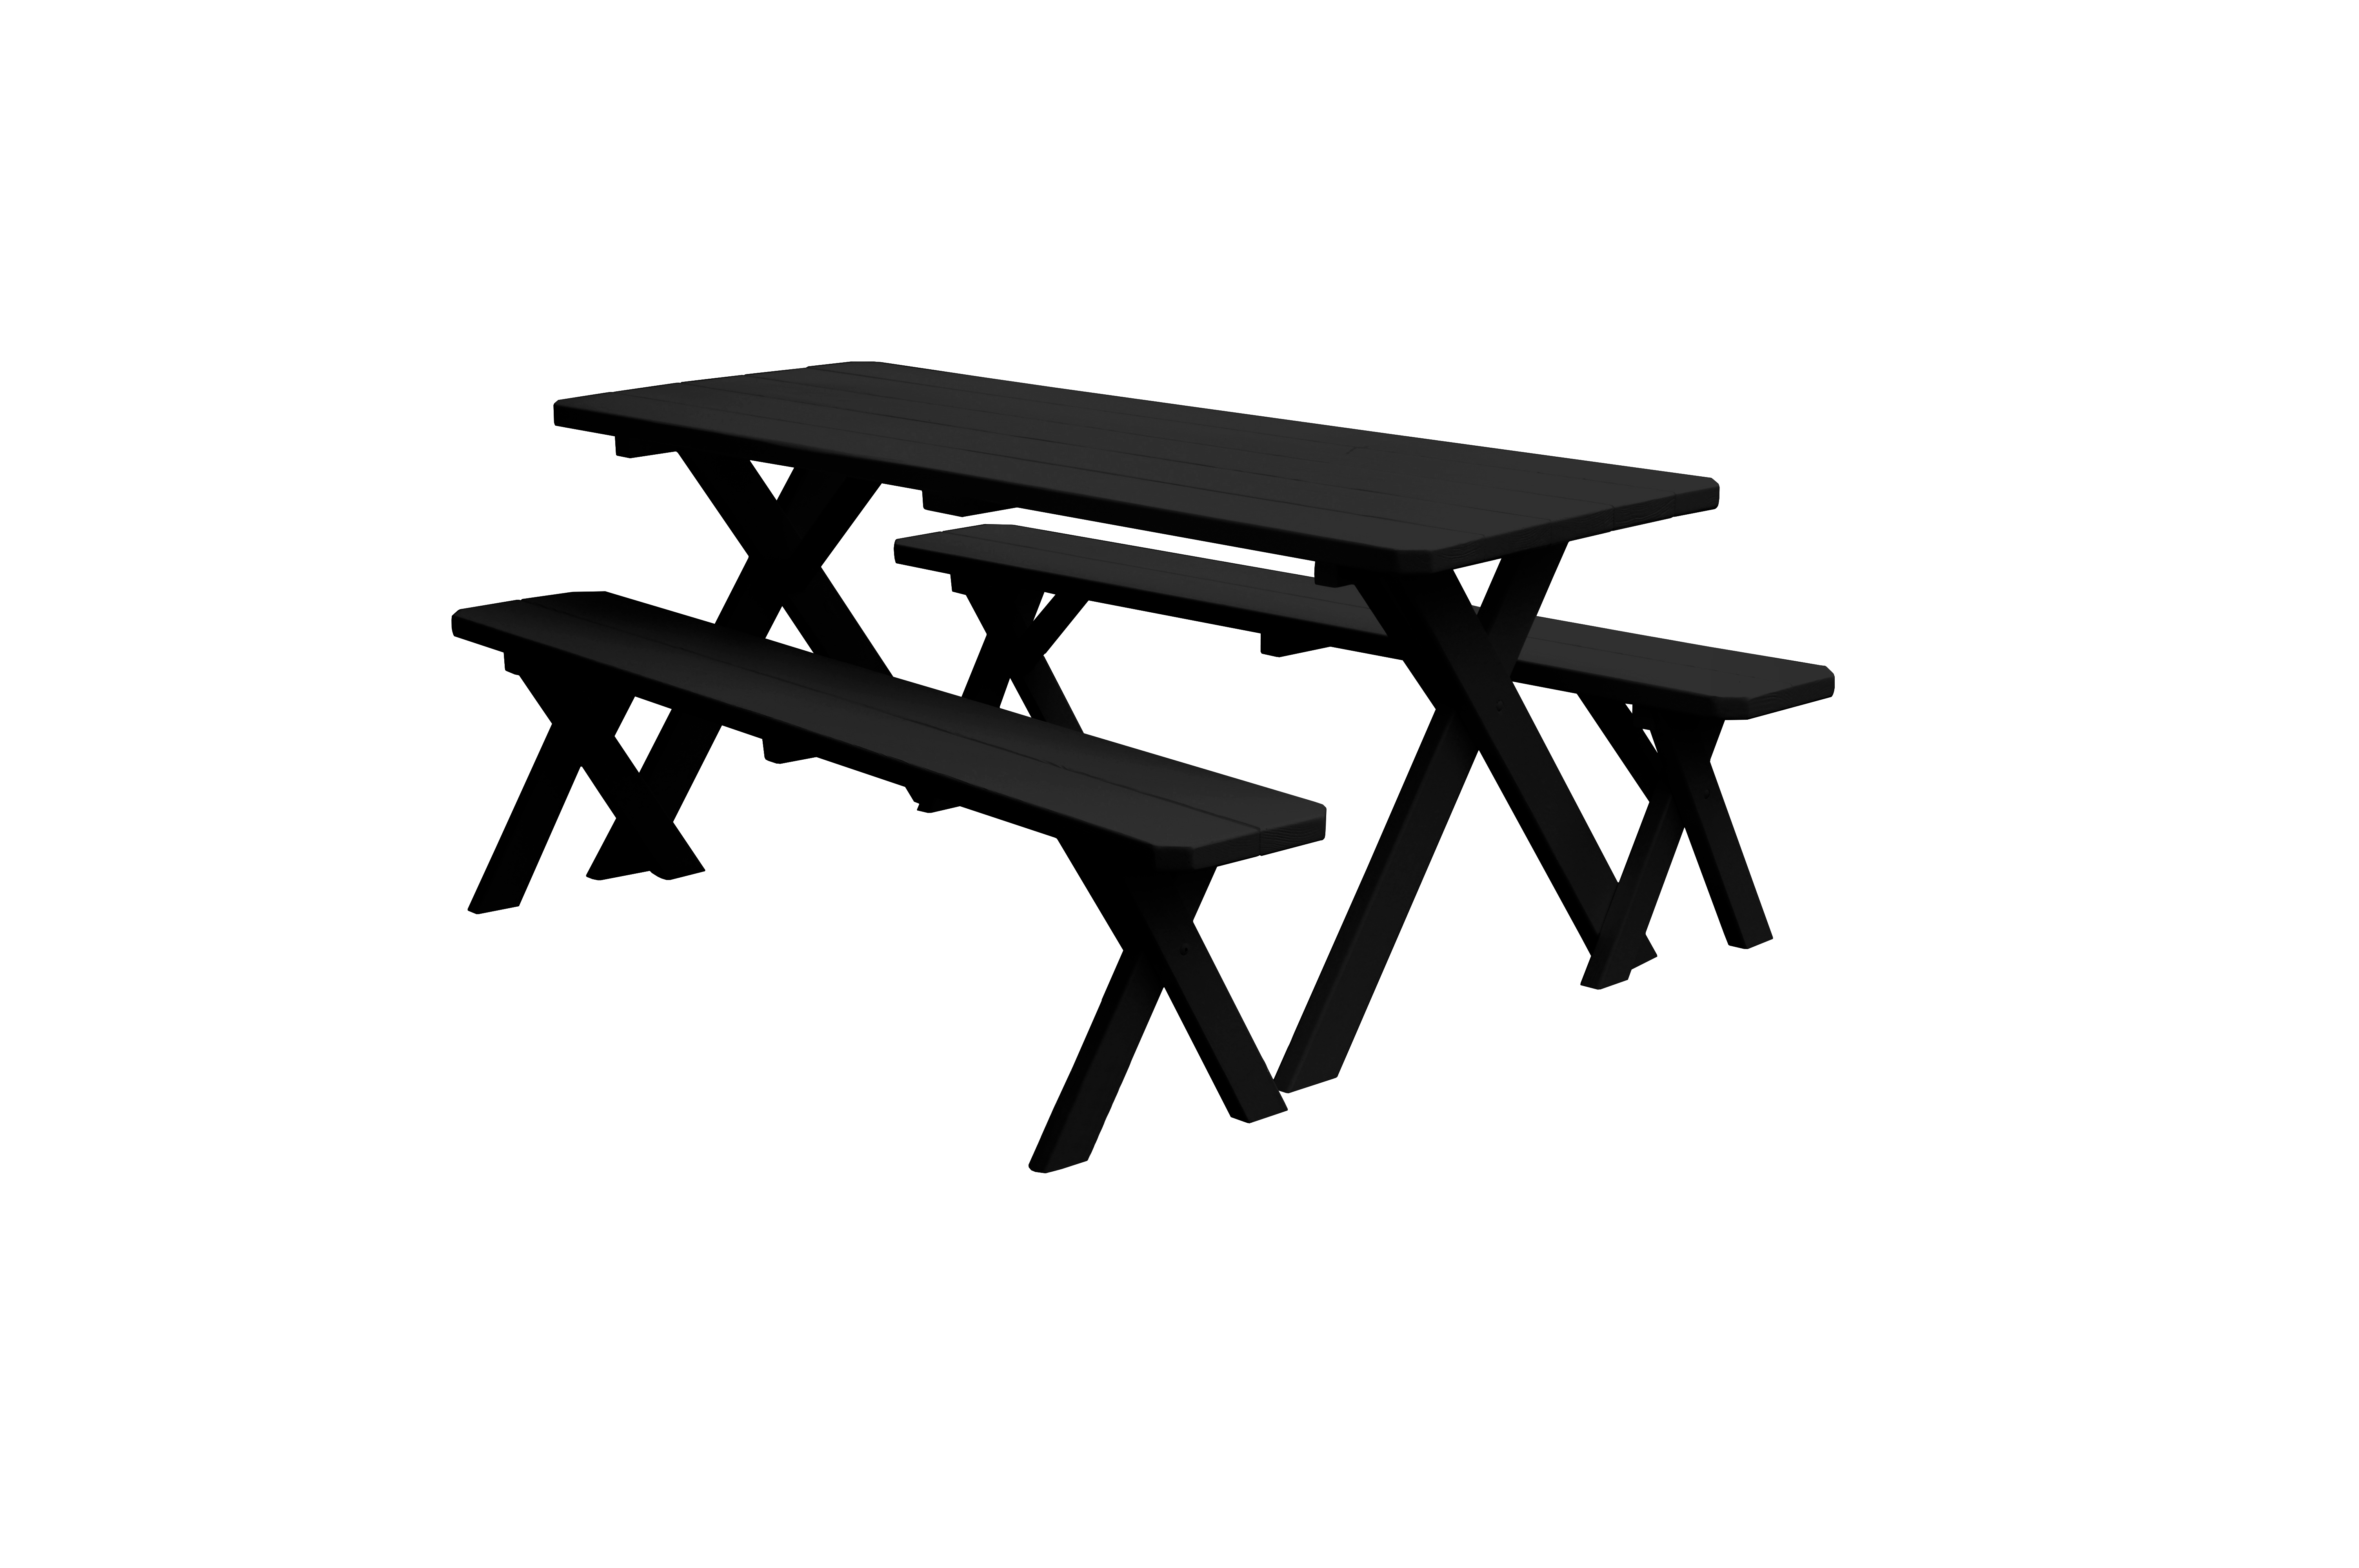 8 foot Cross-leg Wooden Picnic Table with 2 Wooden Benches by